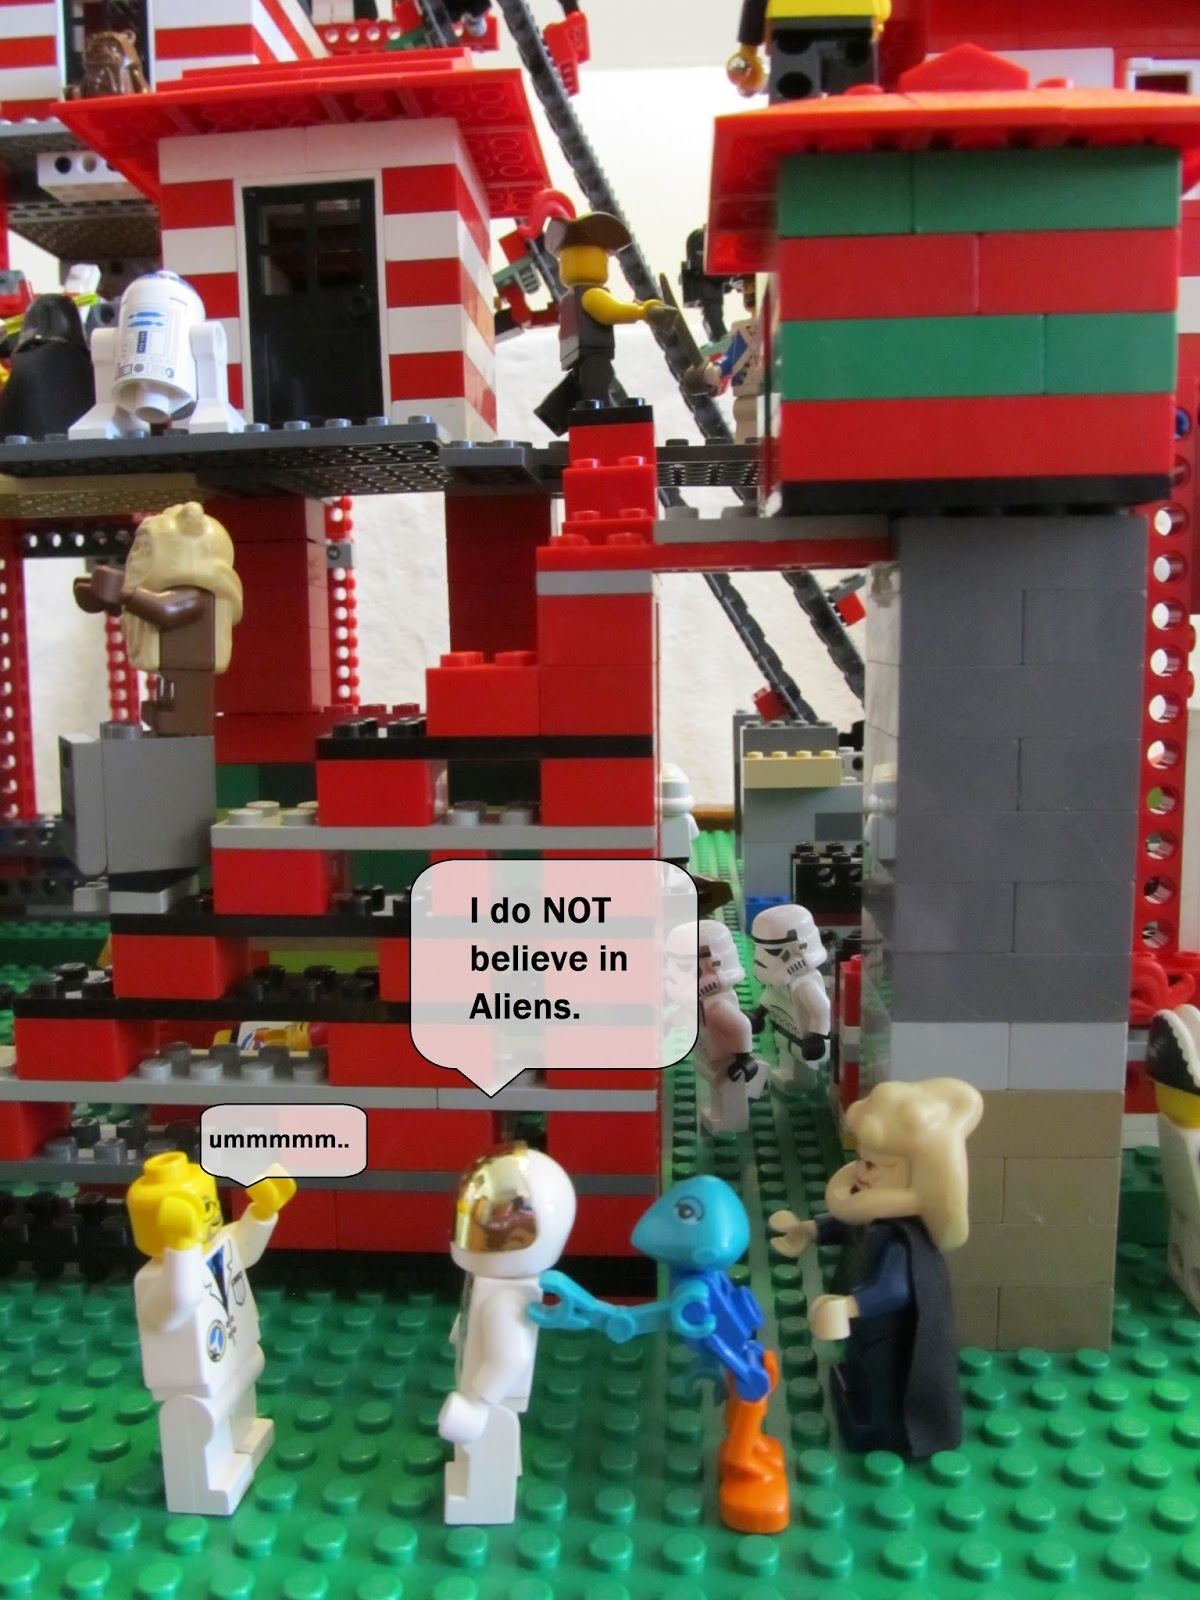 Seize the Absurd: Merry Christmas Lego edition